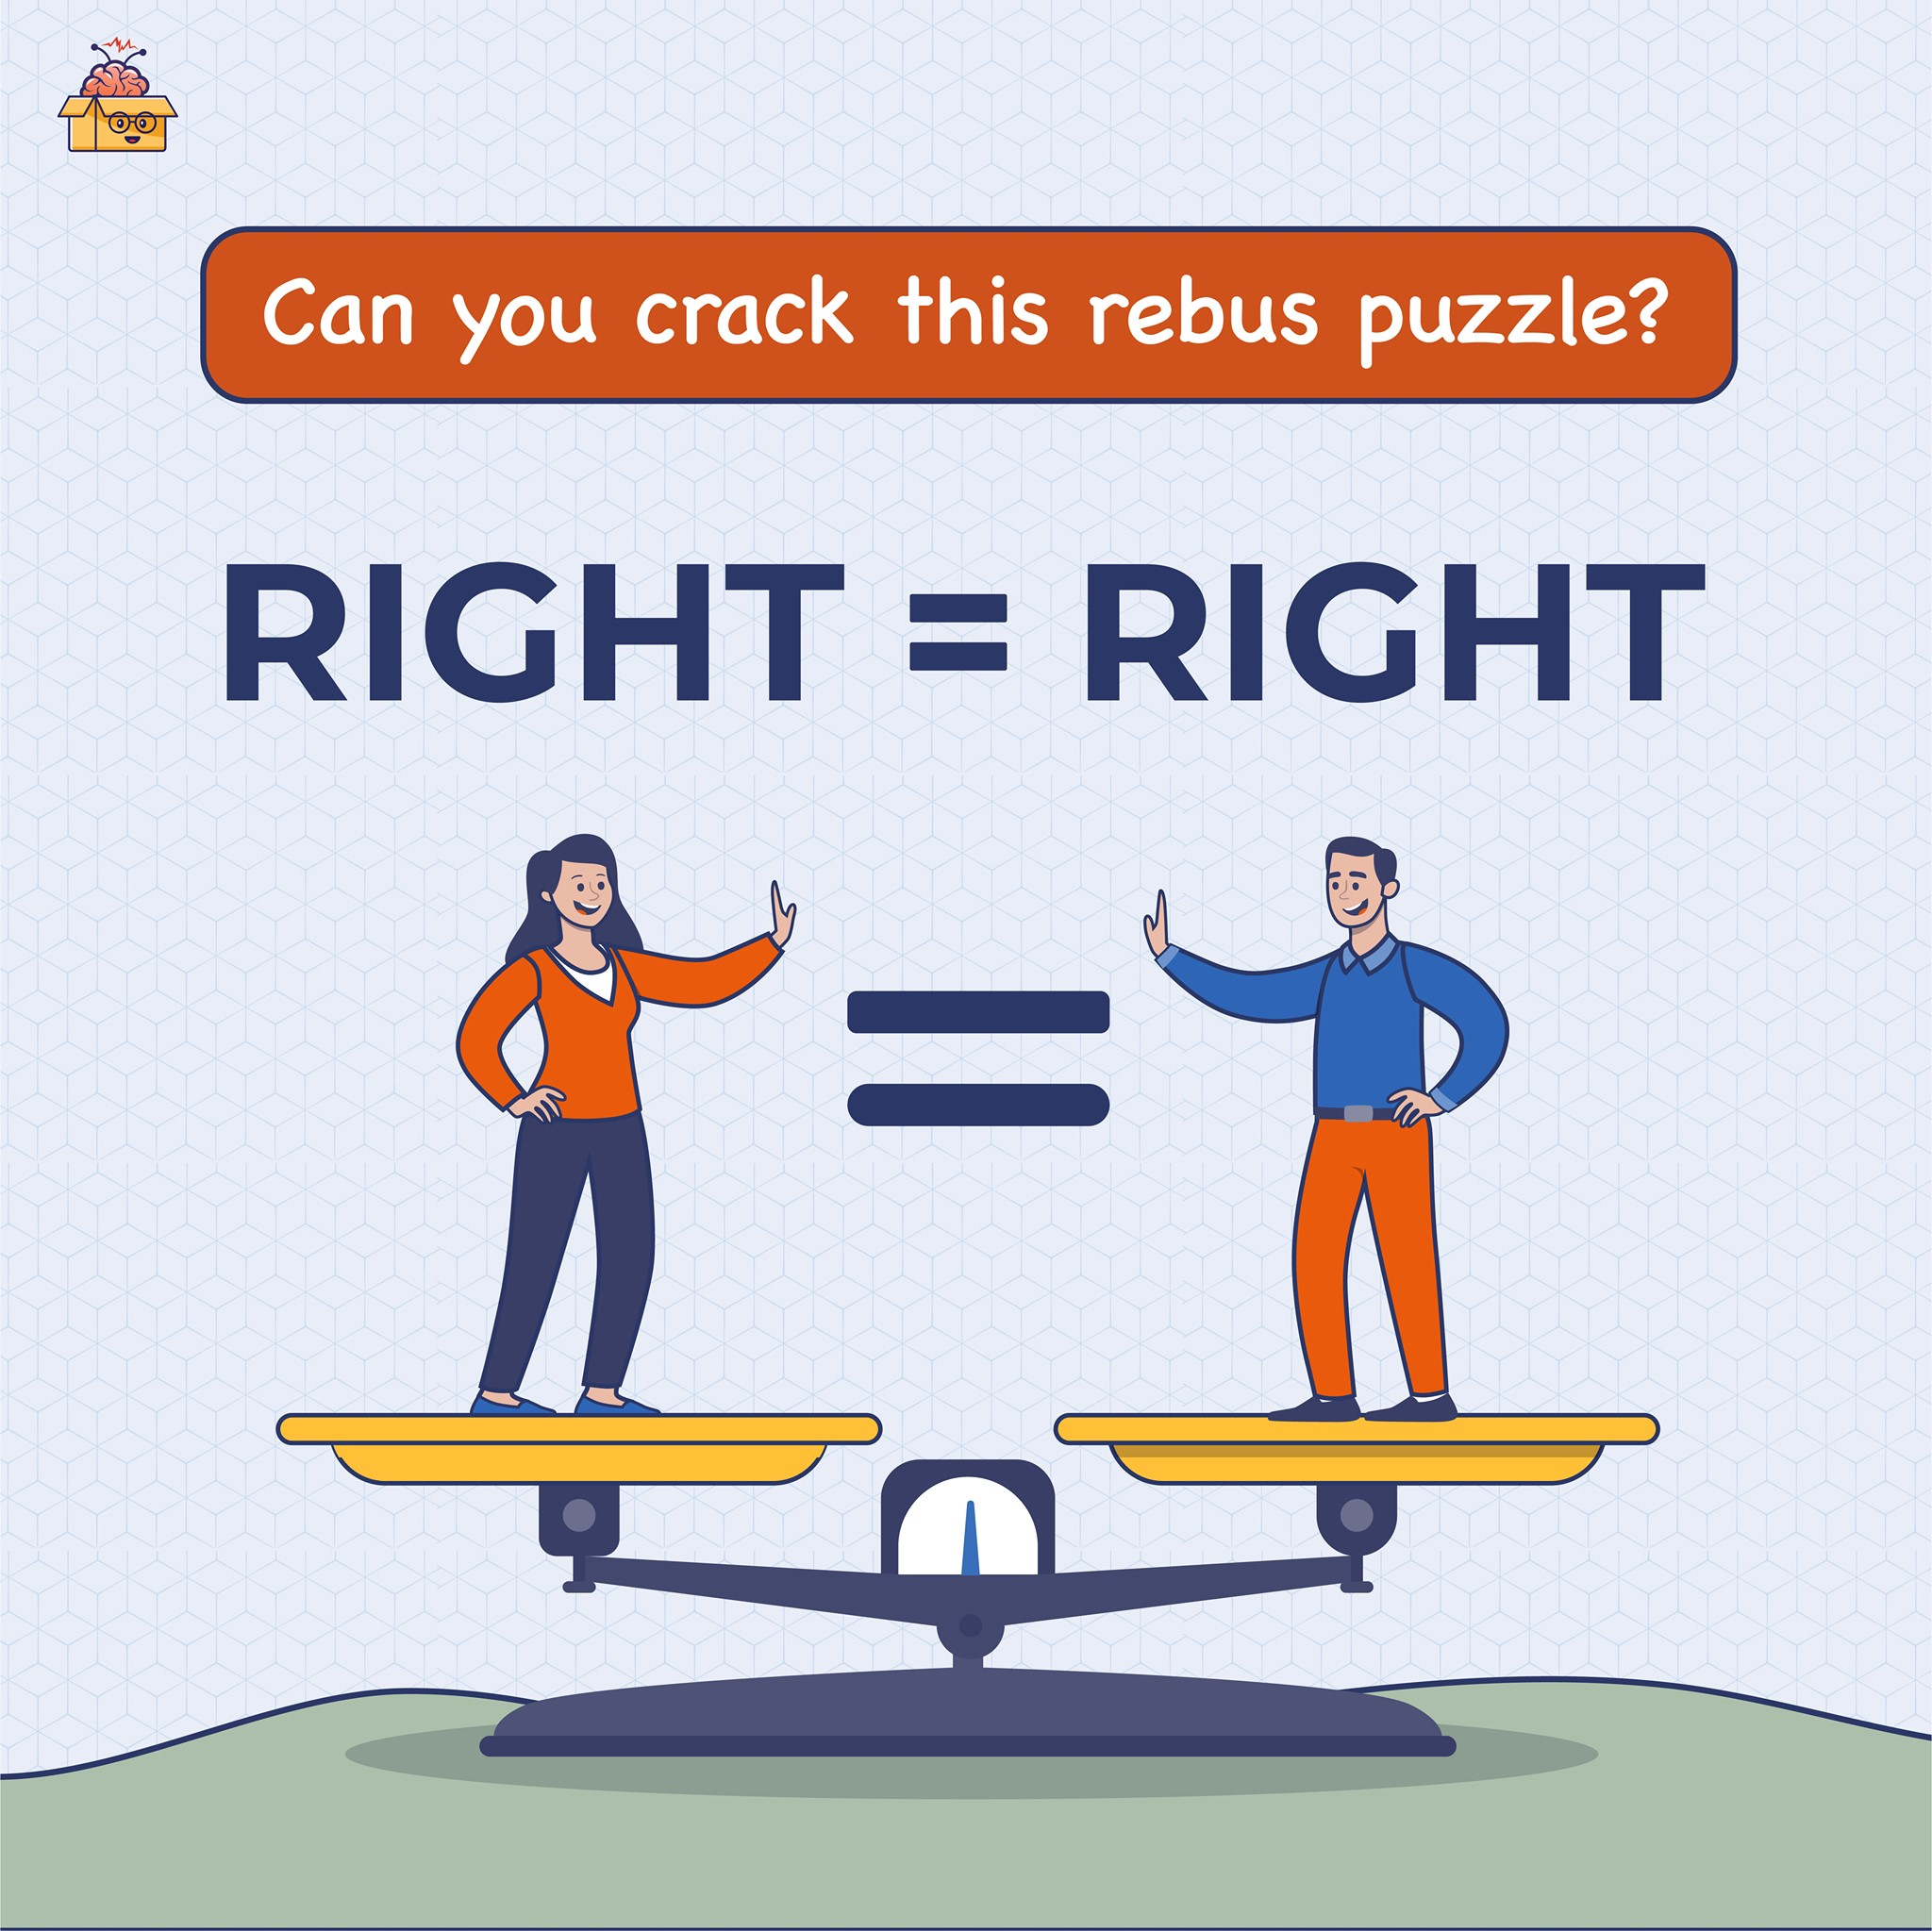 Here's a quick rebus puzzle ( guess the word) for you: Can you decipher the image?